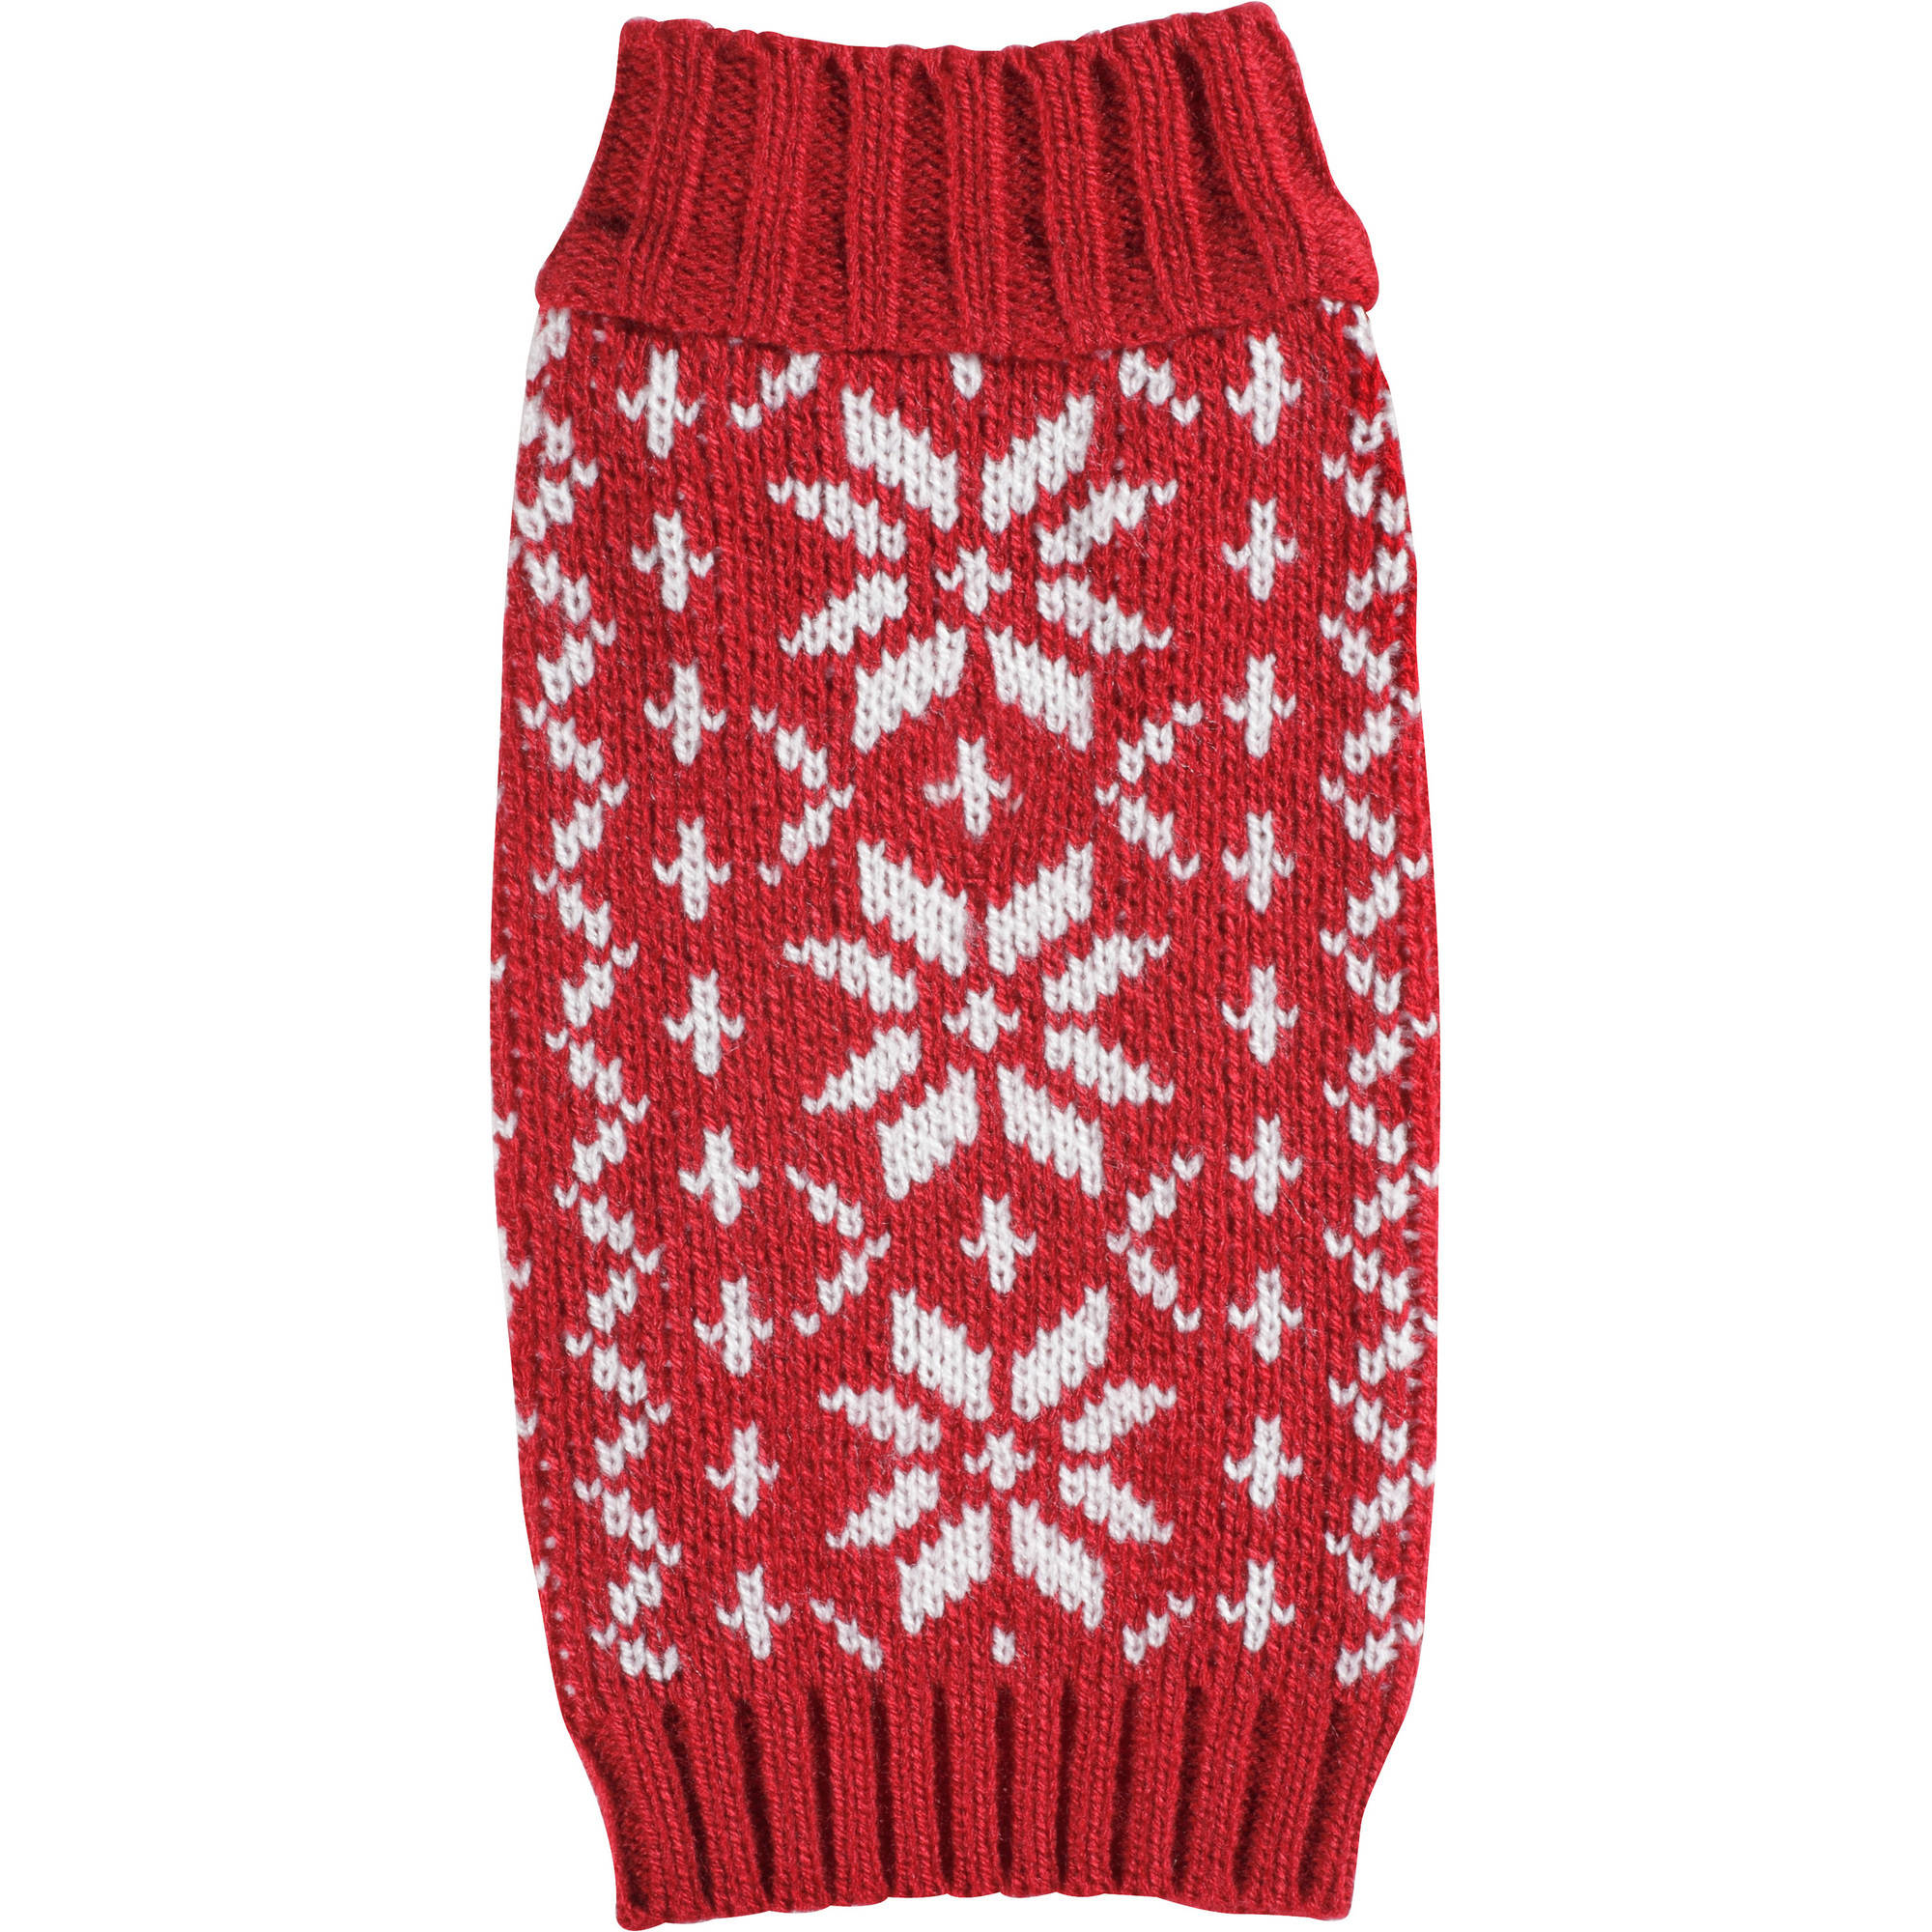 Cayre Group Mock Neck Dog Sweater, Red Snowflake Argyle, Multiple Sizes Available